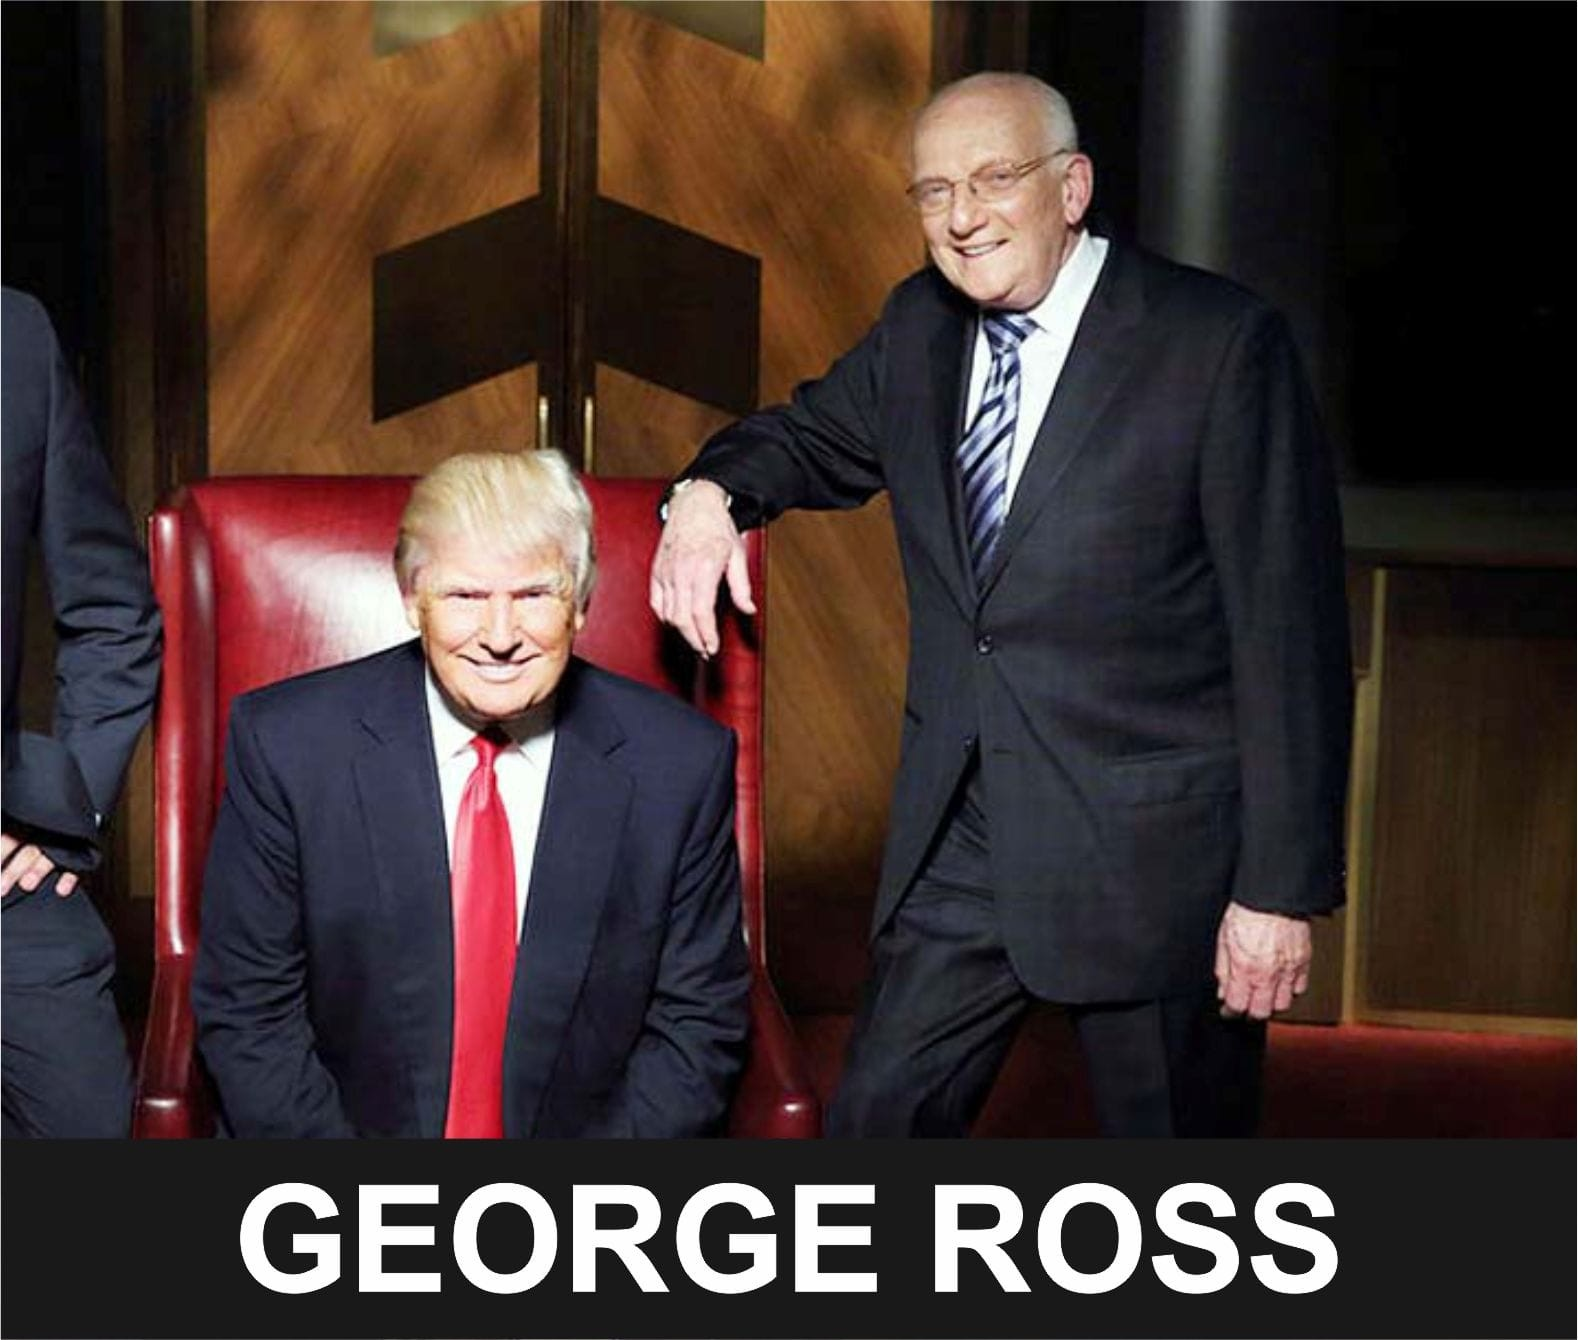 George Ross - Best selling author, Former right-hand man of Donald Trump and The Apprentice Judge